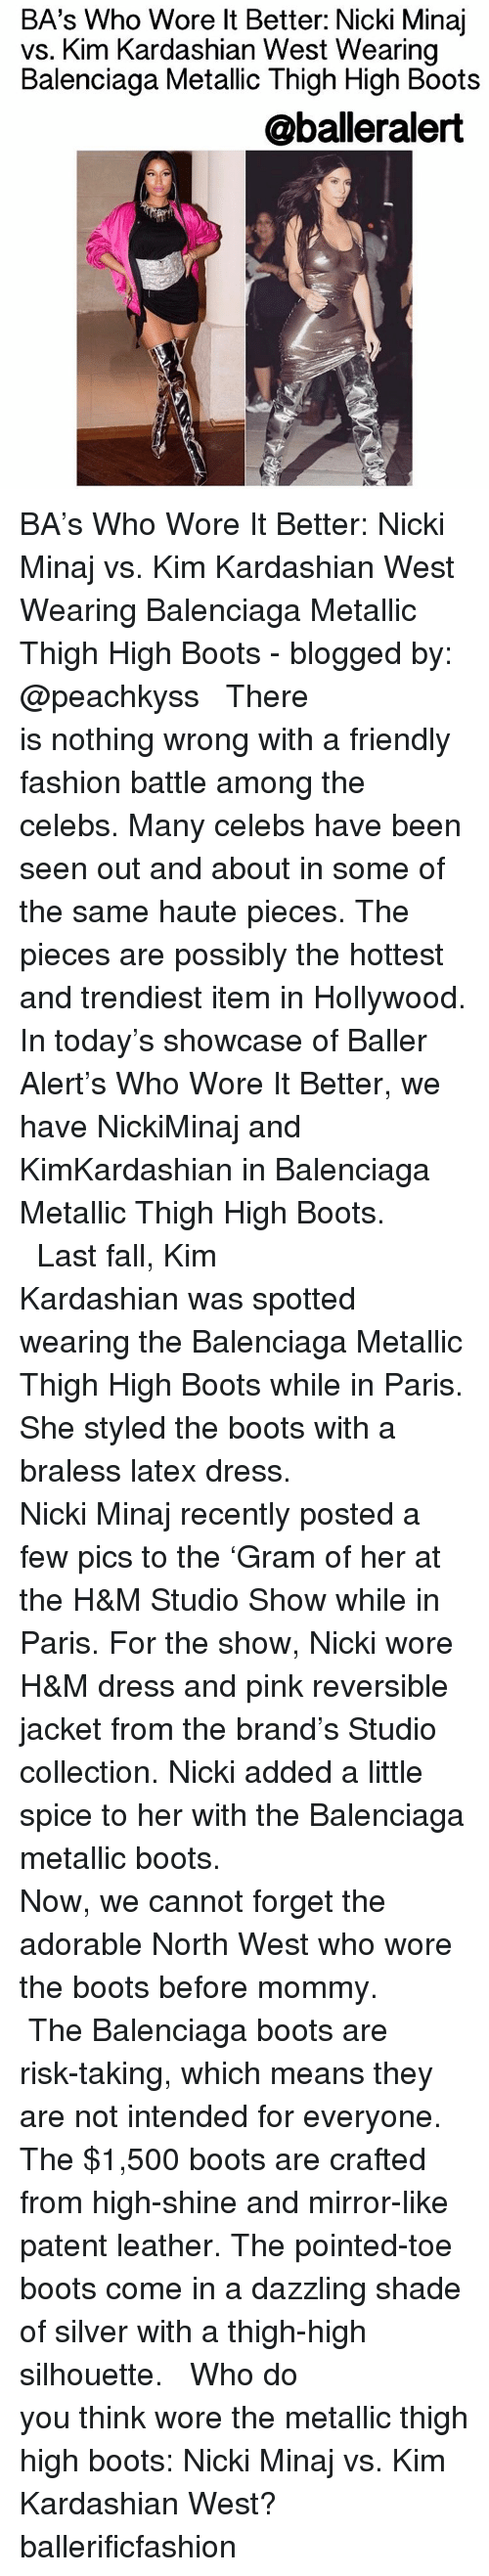 Baller Alert, Kim Kardashian, and Memes: BA's Who Wore lt Better: Nicki Minaj  vs. Kim Kardashian West Wearing  Balenciaga Metallic Thigh High Boots  @balleralert BA's Who Wore It Better: Nicki Minaj vs. Kim Kardashian West Wearing Balenciaga Metallic Thigh High Boots - blogged by: @peachkyss ⠀⠀⠀⠀⠀⠀⠀⠀⠀ ⠀⠀⠀⠀⠀⠀⠀⠀⠀ There is nothing wrong with a friendly fashion battle among the celebs. Many celebs have been seen out and about in some of the same haute pieces. The pieces are possibly the hottest and trendiest item in Hollywood. In today's showcase of Baller Alert's Who Wore It Better, we have NickiMinaj and KimKardashian in Balenciaga Metallic Thigh High Boots. ⠀⠀⠀⠀⠀⠀⠀⠀⠀ ⠀⠀⠀⠀⠀⠀⠀⠀⠀ Last fall, Kim Kardashian was spotted wearing the Balenciaga Metallic Thigh High Boots while in Paris. She styled the boots with a braless latex dress. ⠀⠀⠀⠀⠀⠀⠀⠀⠀ ⠀⠀⠀⠀⠀⠀⠀⠀⠀ Nicki Minaj recently posted a few pics to the 'Gram of her at the H&M Studio Show while in Paris. For the show, Nicki wore H&M dress and pink reversible jacket from the brand's Studio collection. Nicki added a little spice to her with the Balenciaga metallic boots. ⠀⠀⠀⠀⠀⠀⠀⠀⠀ ⠀⠀⠀⠀⠀⠀⠀⠀⠀ Now, we cannot forget the adorable North West who wore the boots before mommy. ⠀⠀⠀⠀⠀⠀⠀⠀⠀ ⠀⠀⠀⠀⠀⠀⠀⠀⠀ The Balenciaga boots are risk-taking, which means they are not intended for everyone. The $1,500 boots are crafted from high-shine and mirror-like patent leather. The pointed-toe boots come in a dazzling shade of silver with a thigh-high silhouette. ⠀⠀⠀⠀⠀⠀⠀⠀⠀ ⠀⠀⠀⠀⠀⠀⠀⠀⠀ Who do you think wore the metallic thigh high boots: Nicki Minaj vs. Kim Kardashian West? ballerificfashion